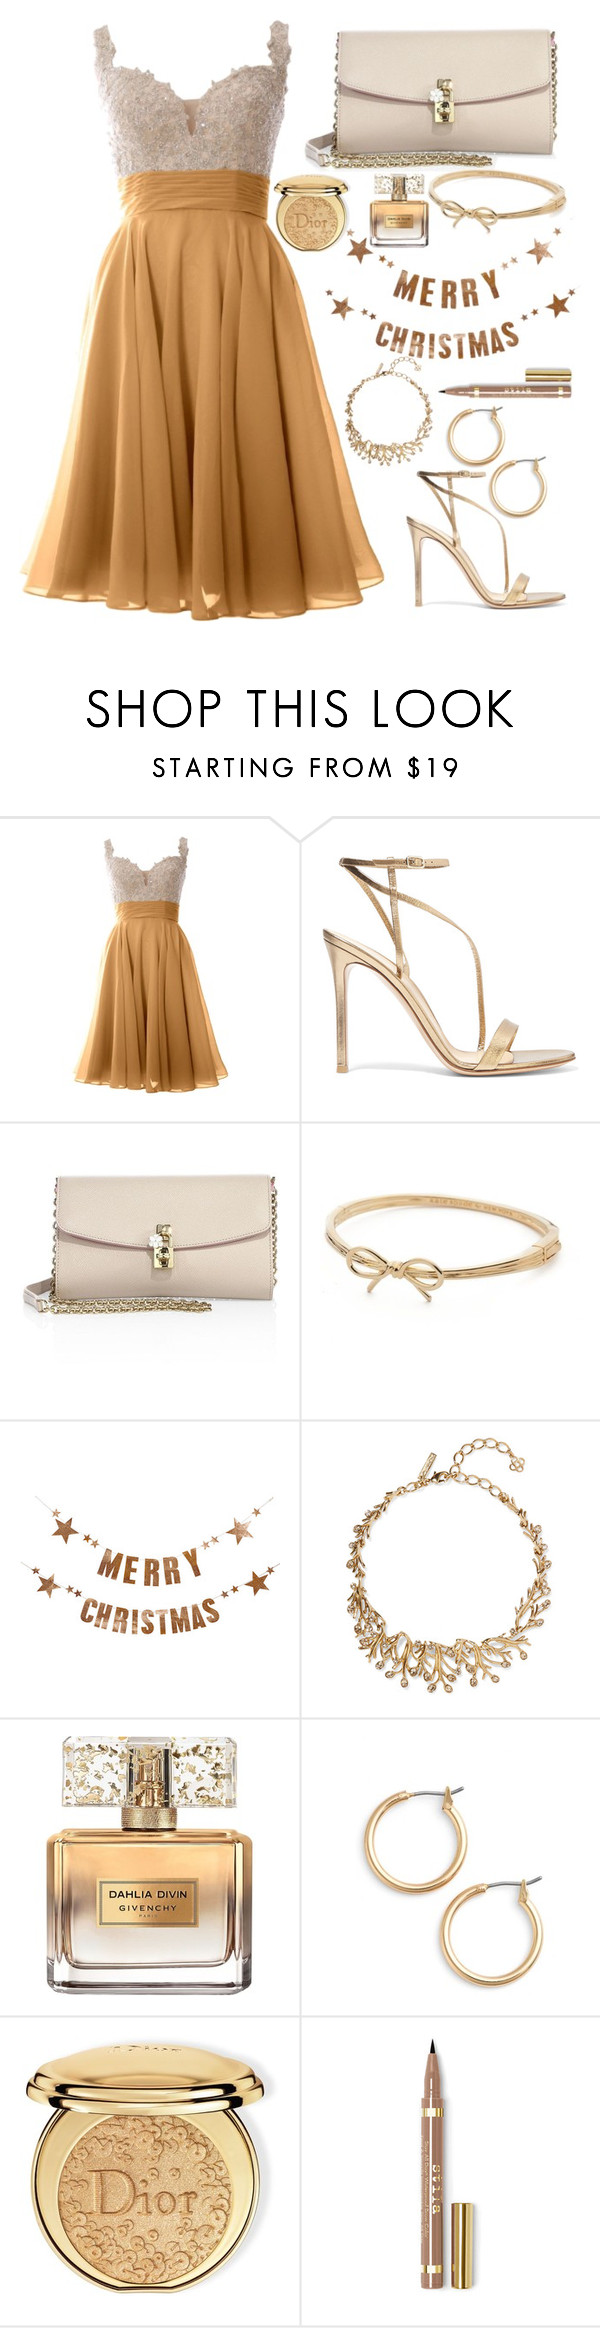 """""""Golden Christmas"""" by abigail-b12 ❤ liked on Polyvore featuring Gianvito Rossi, Dolce&Gabbana, Kate Spade, Bloomingville, Oscar de la Renta, Givenchy, Nordstrom and Christian Dior"""